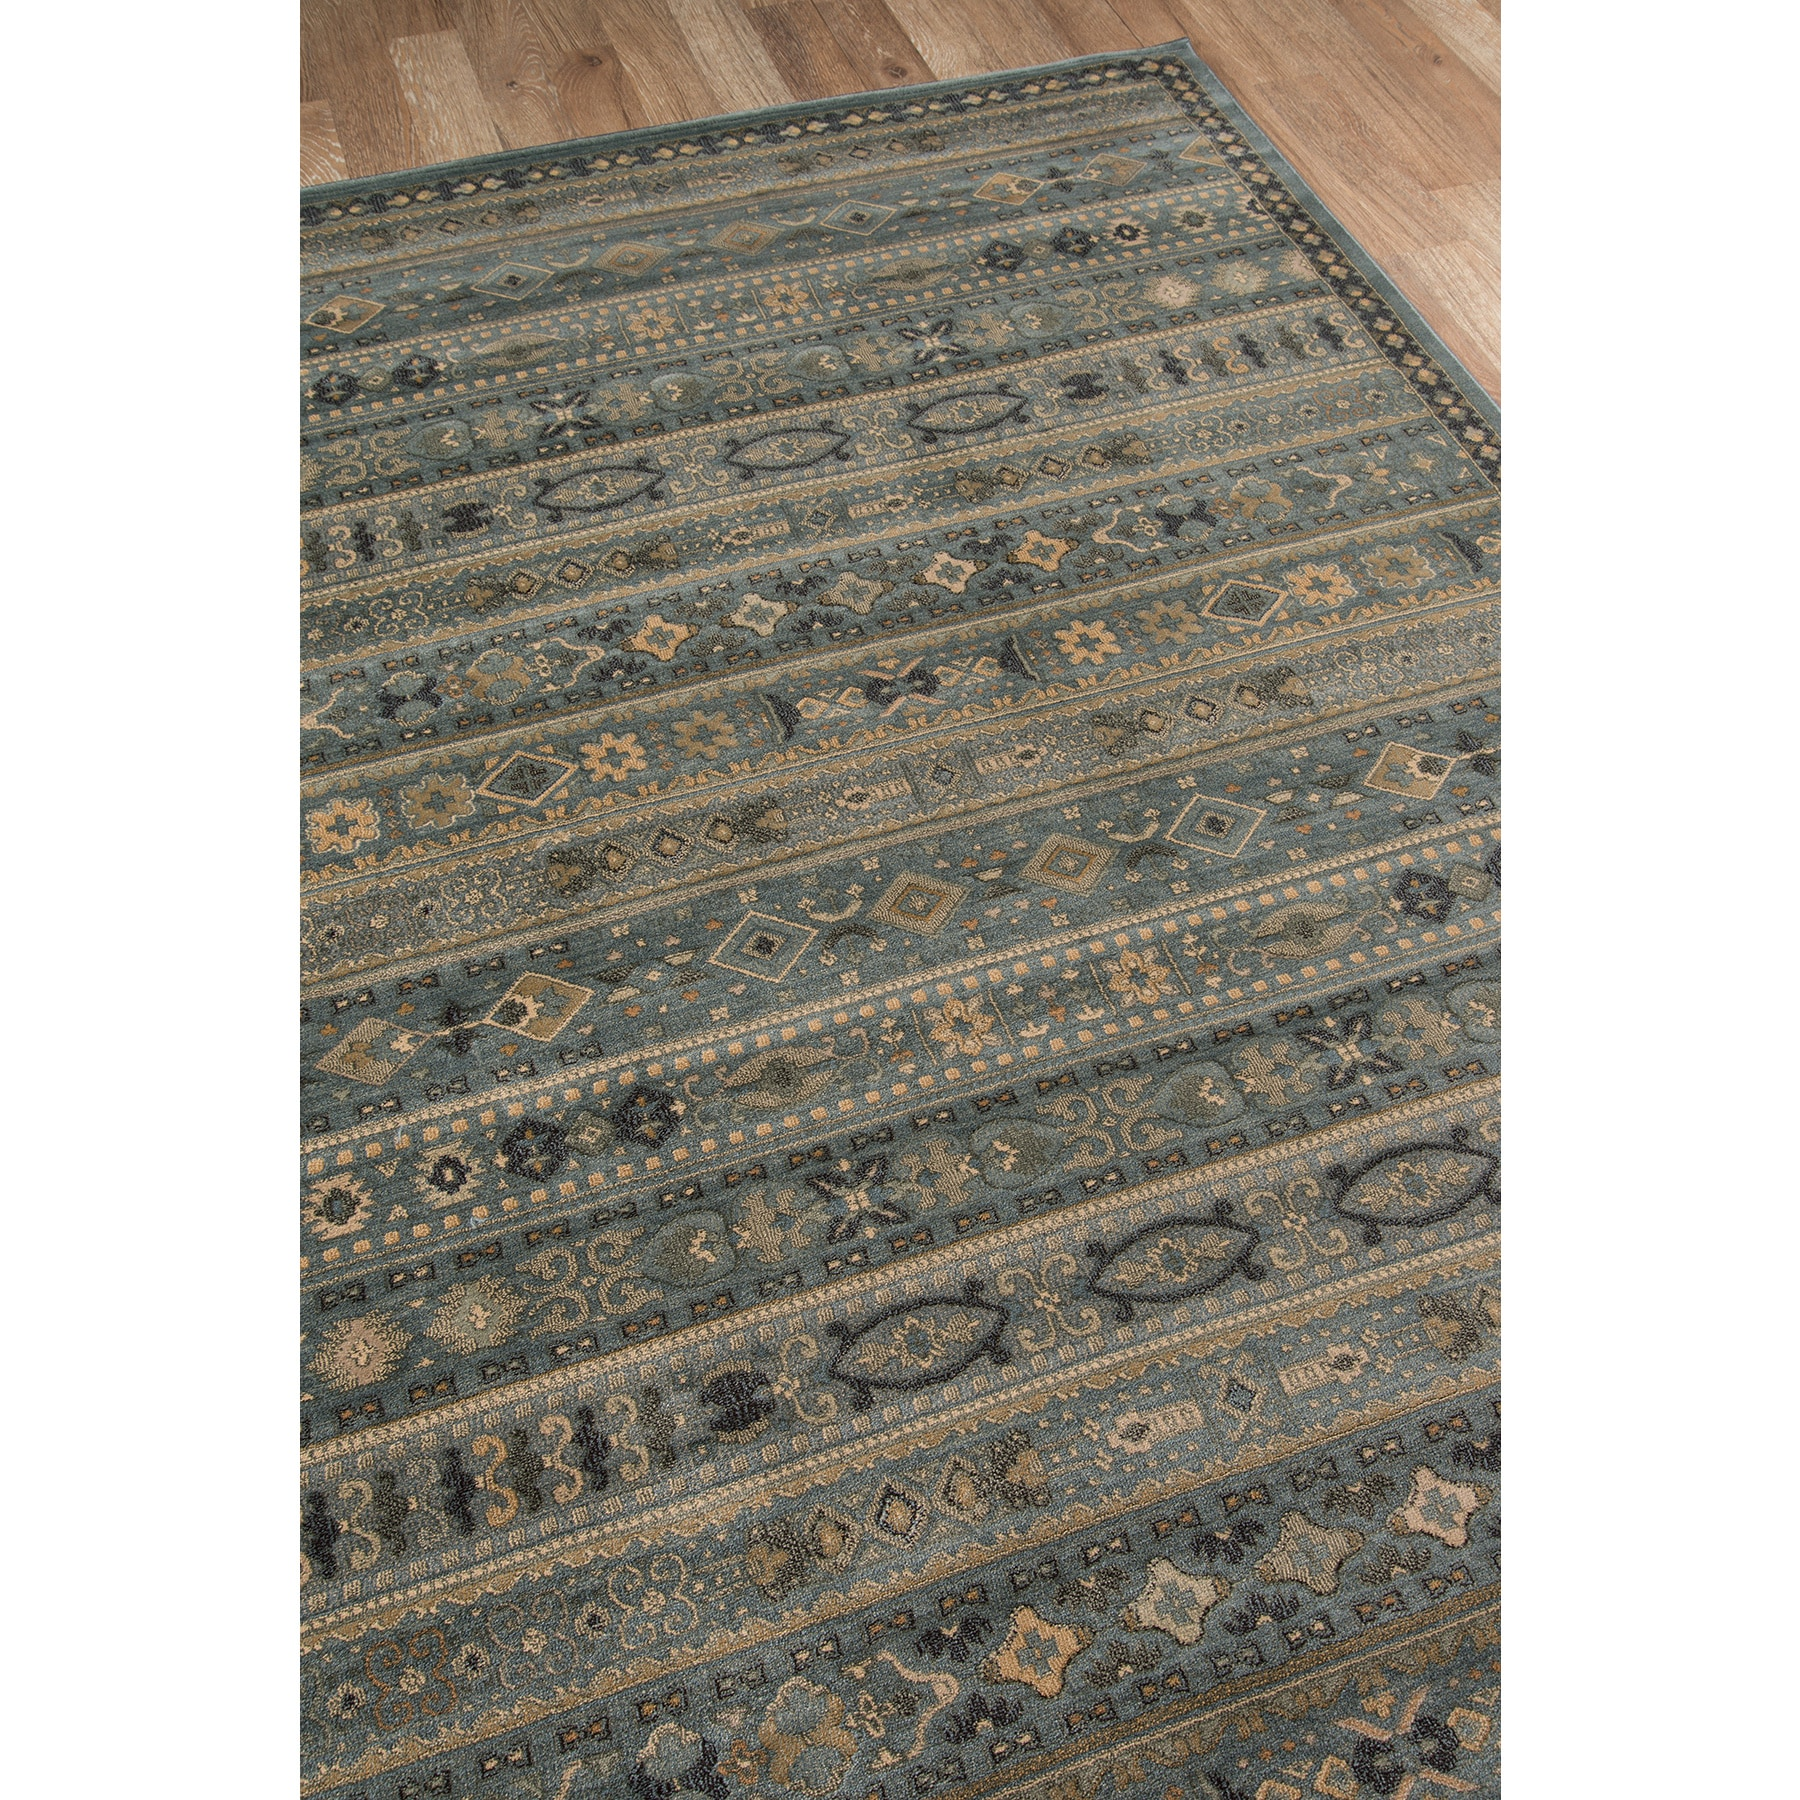 Momeni Belmont Machine Made Polypropylene Light Blue Area Rug 7 10 X 9